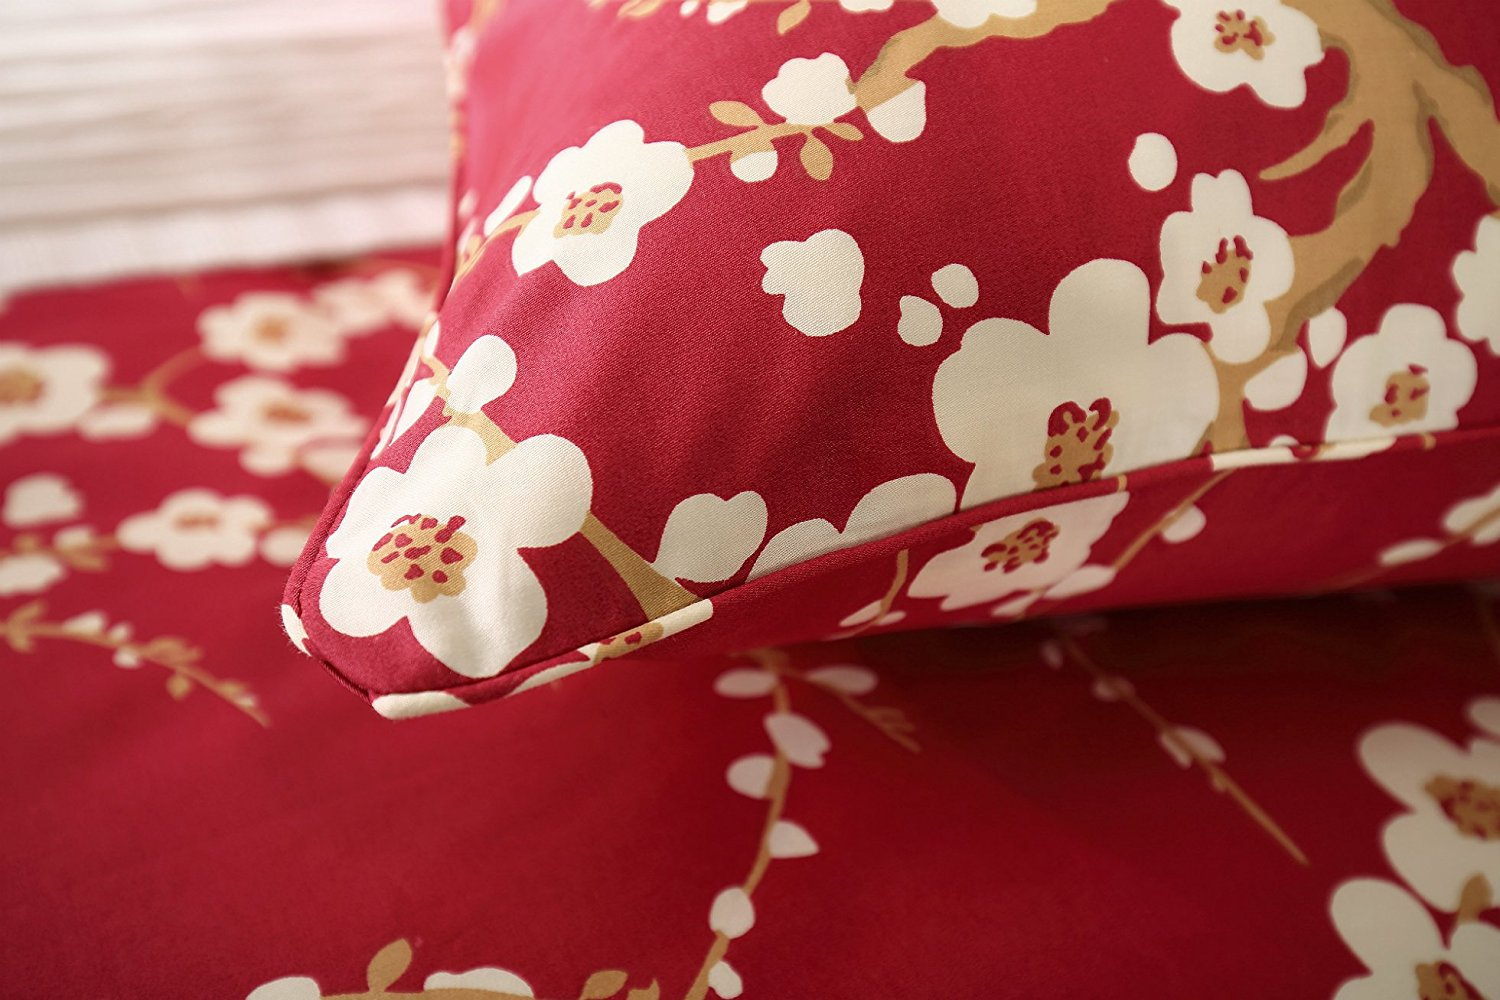 SoSungSet Duvet Oriental Cherry Tree in Blossom Traditional Oriental Ink Painting Table Runner Cotton Linen Home Decor for Wedding Party Banquet Decoration 13 x 36 inches